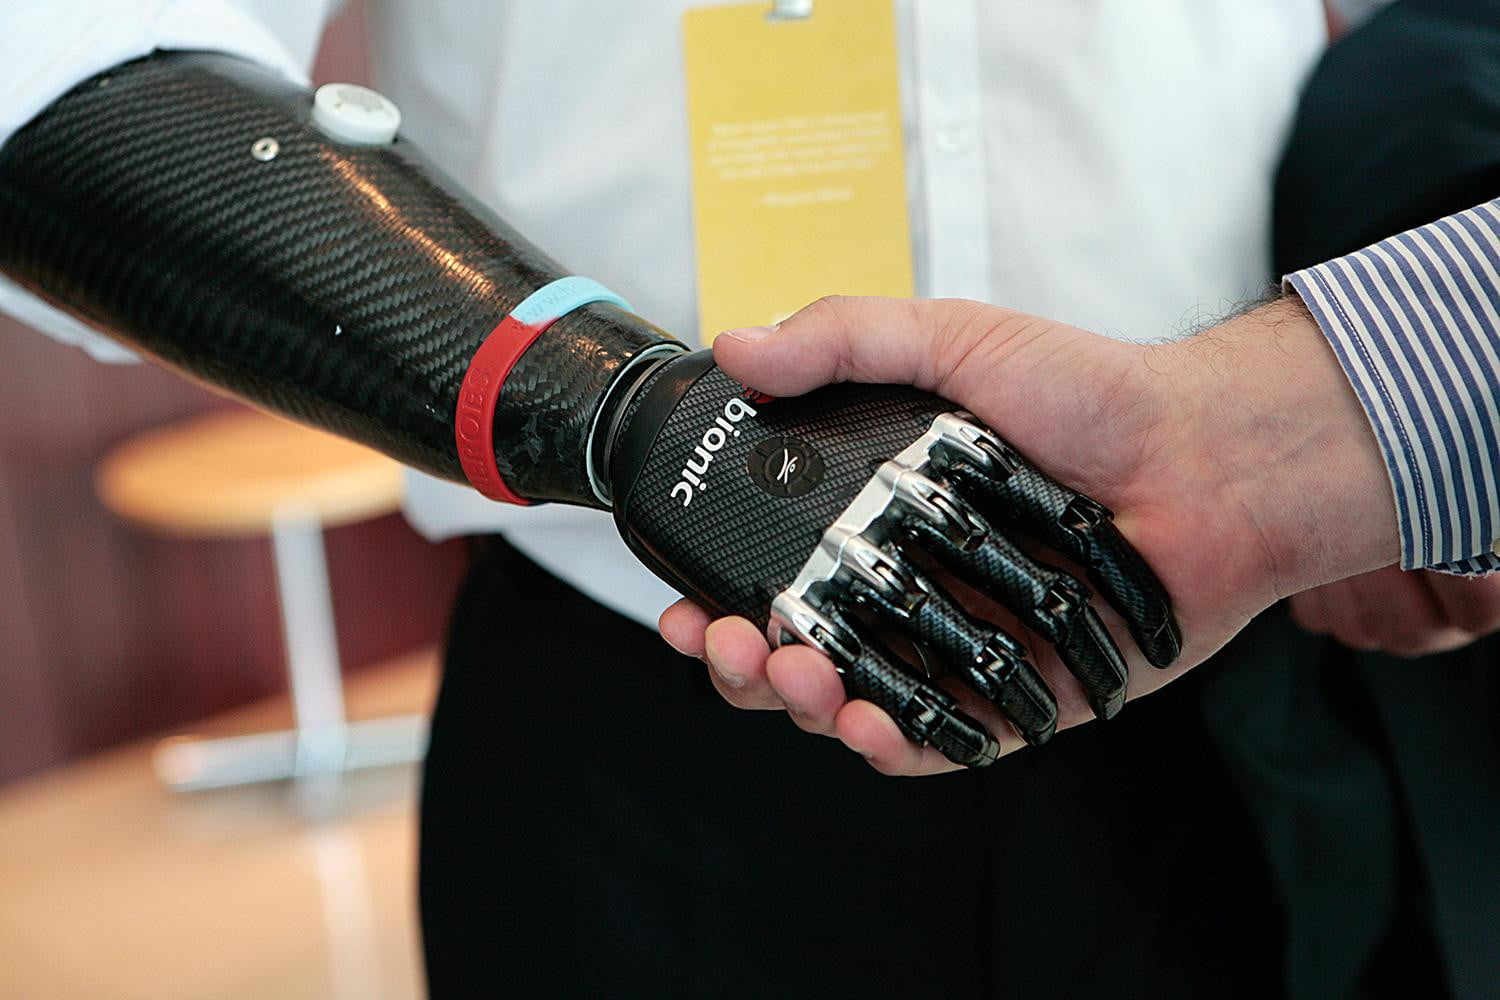 prosthetic hand technologies A new nerve interface can simulate a sense of touch from 20 spots on a prosthetic hand.